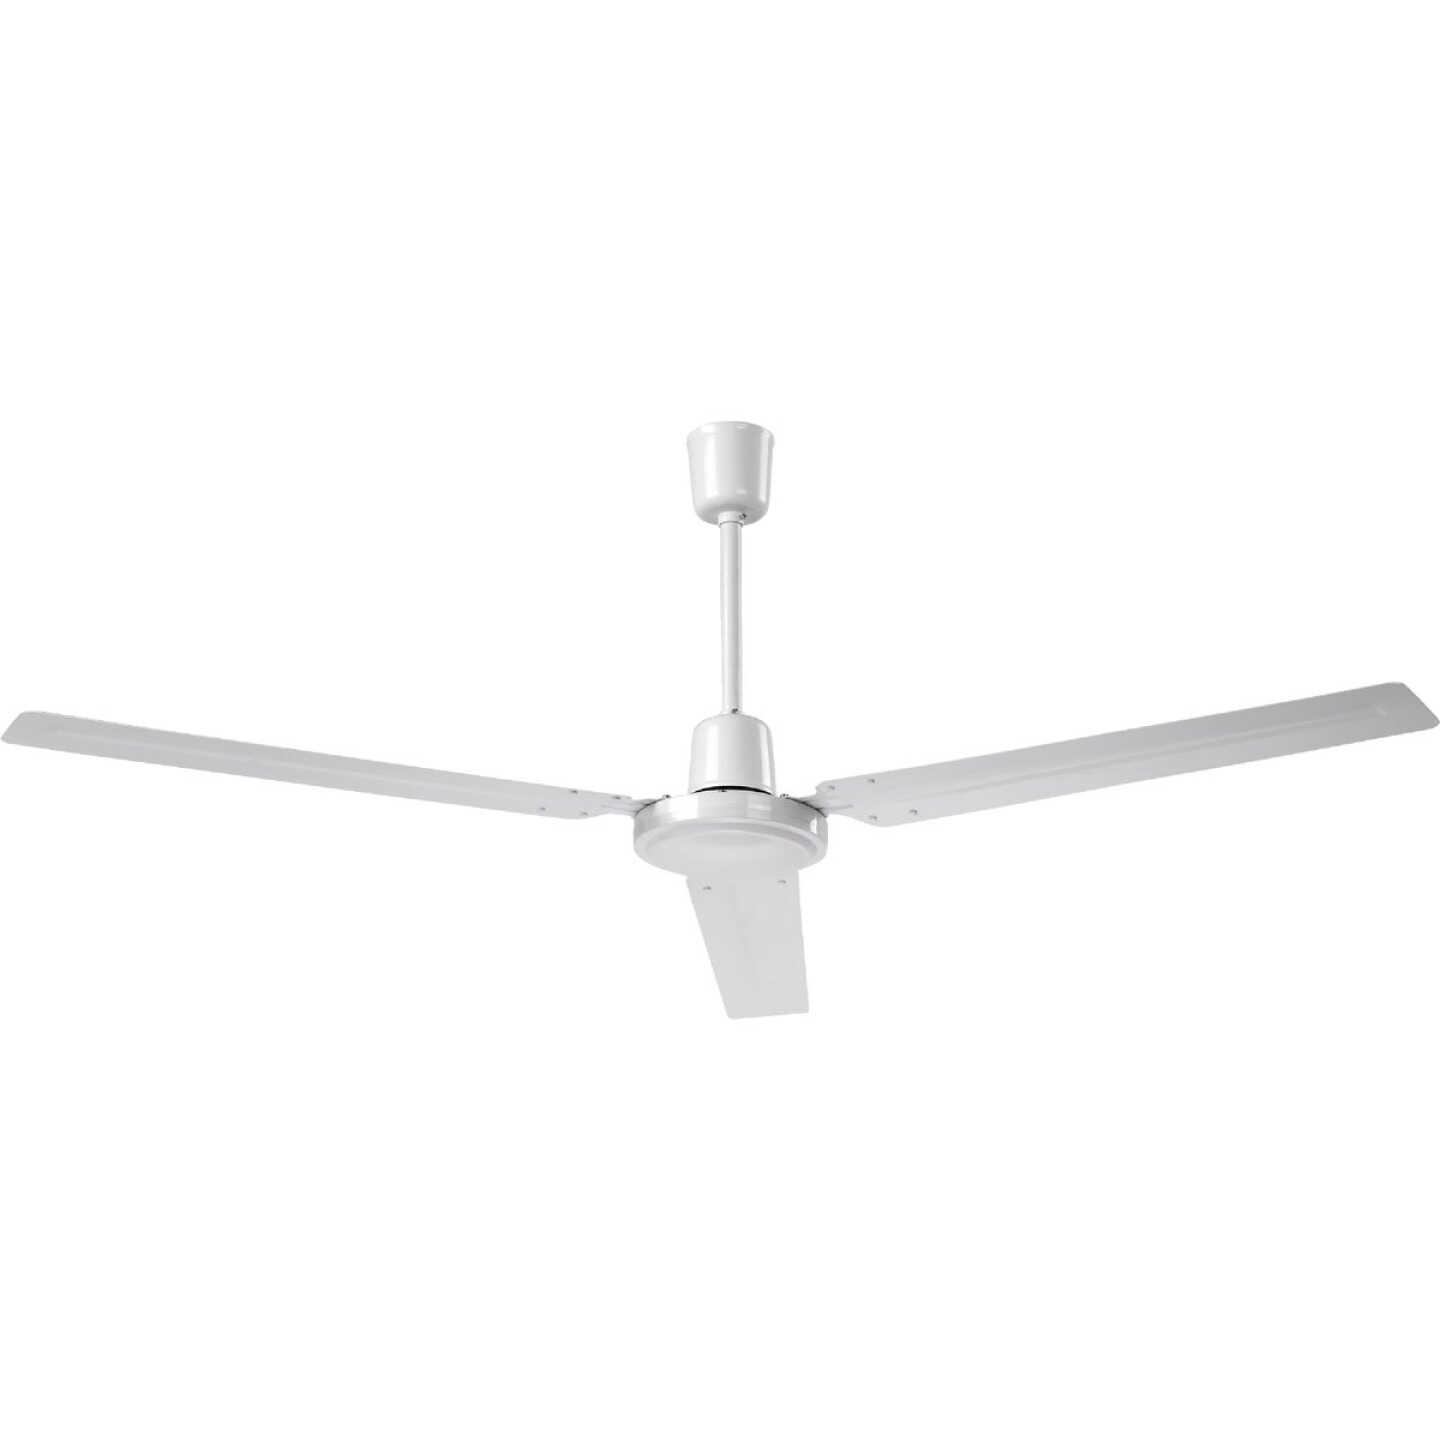 Home Impressions Industrial 56 In. White Ceiling Fan Image 1